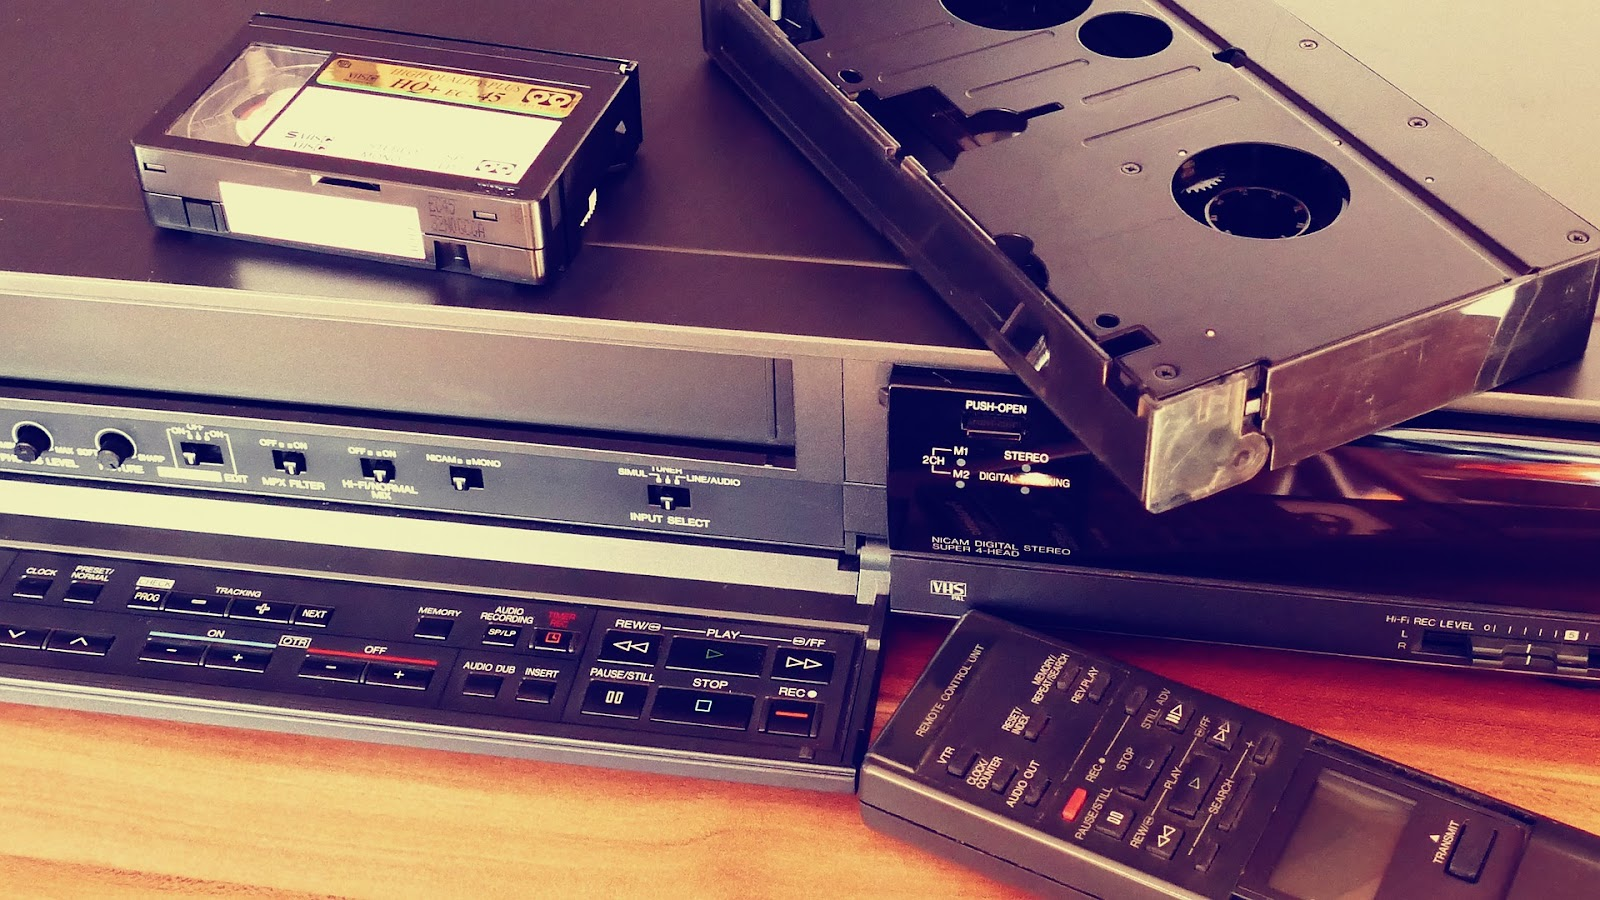 1990's technology: large and small video tapes, VCR, audio receiver, and remote